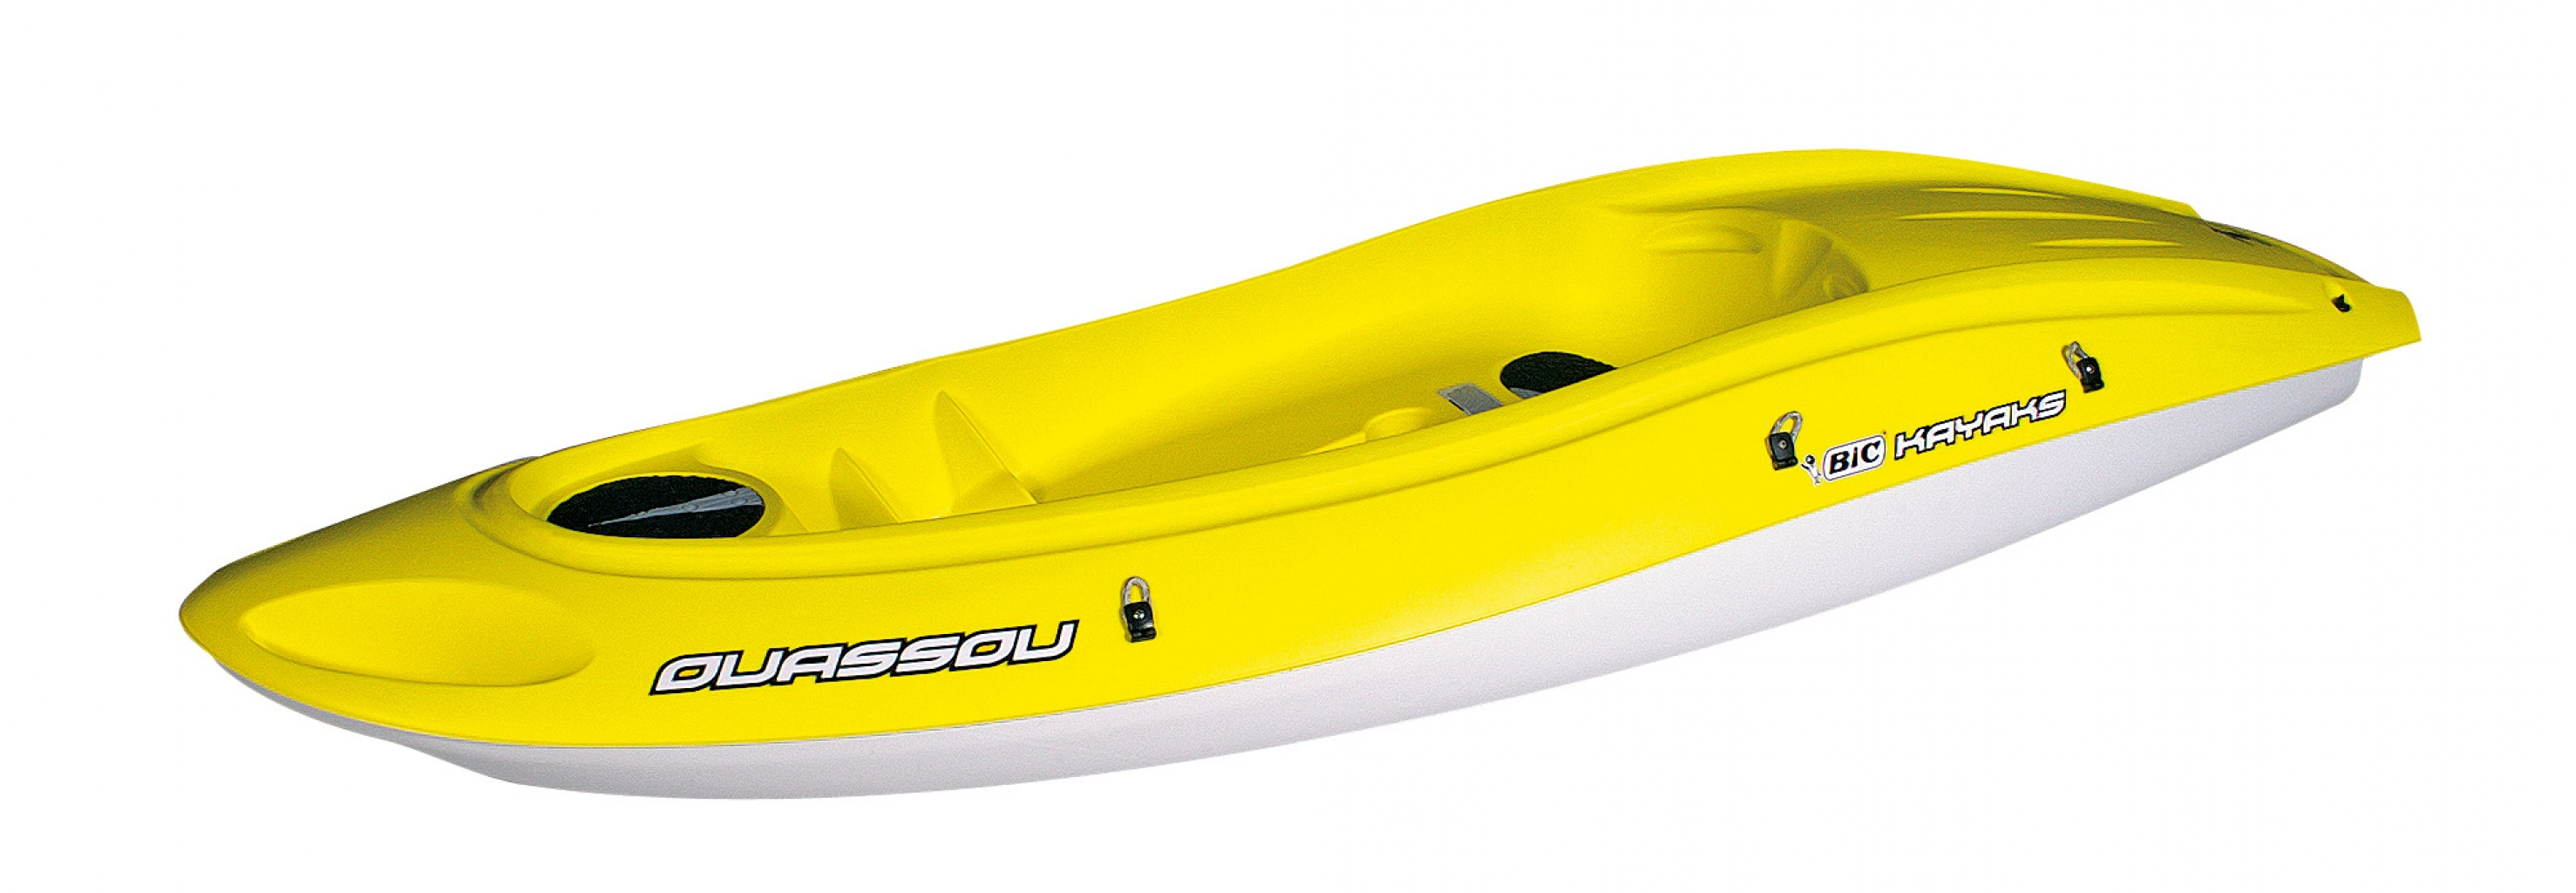 Ouassou Kayak For Sale (New)